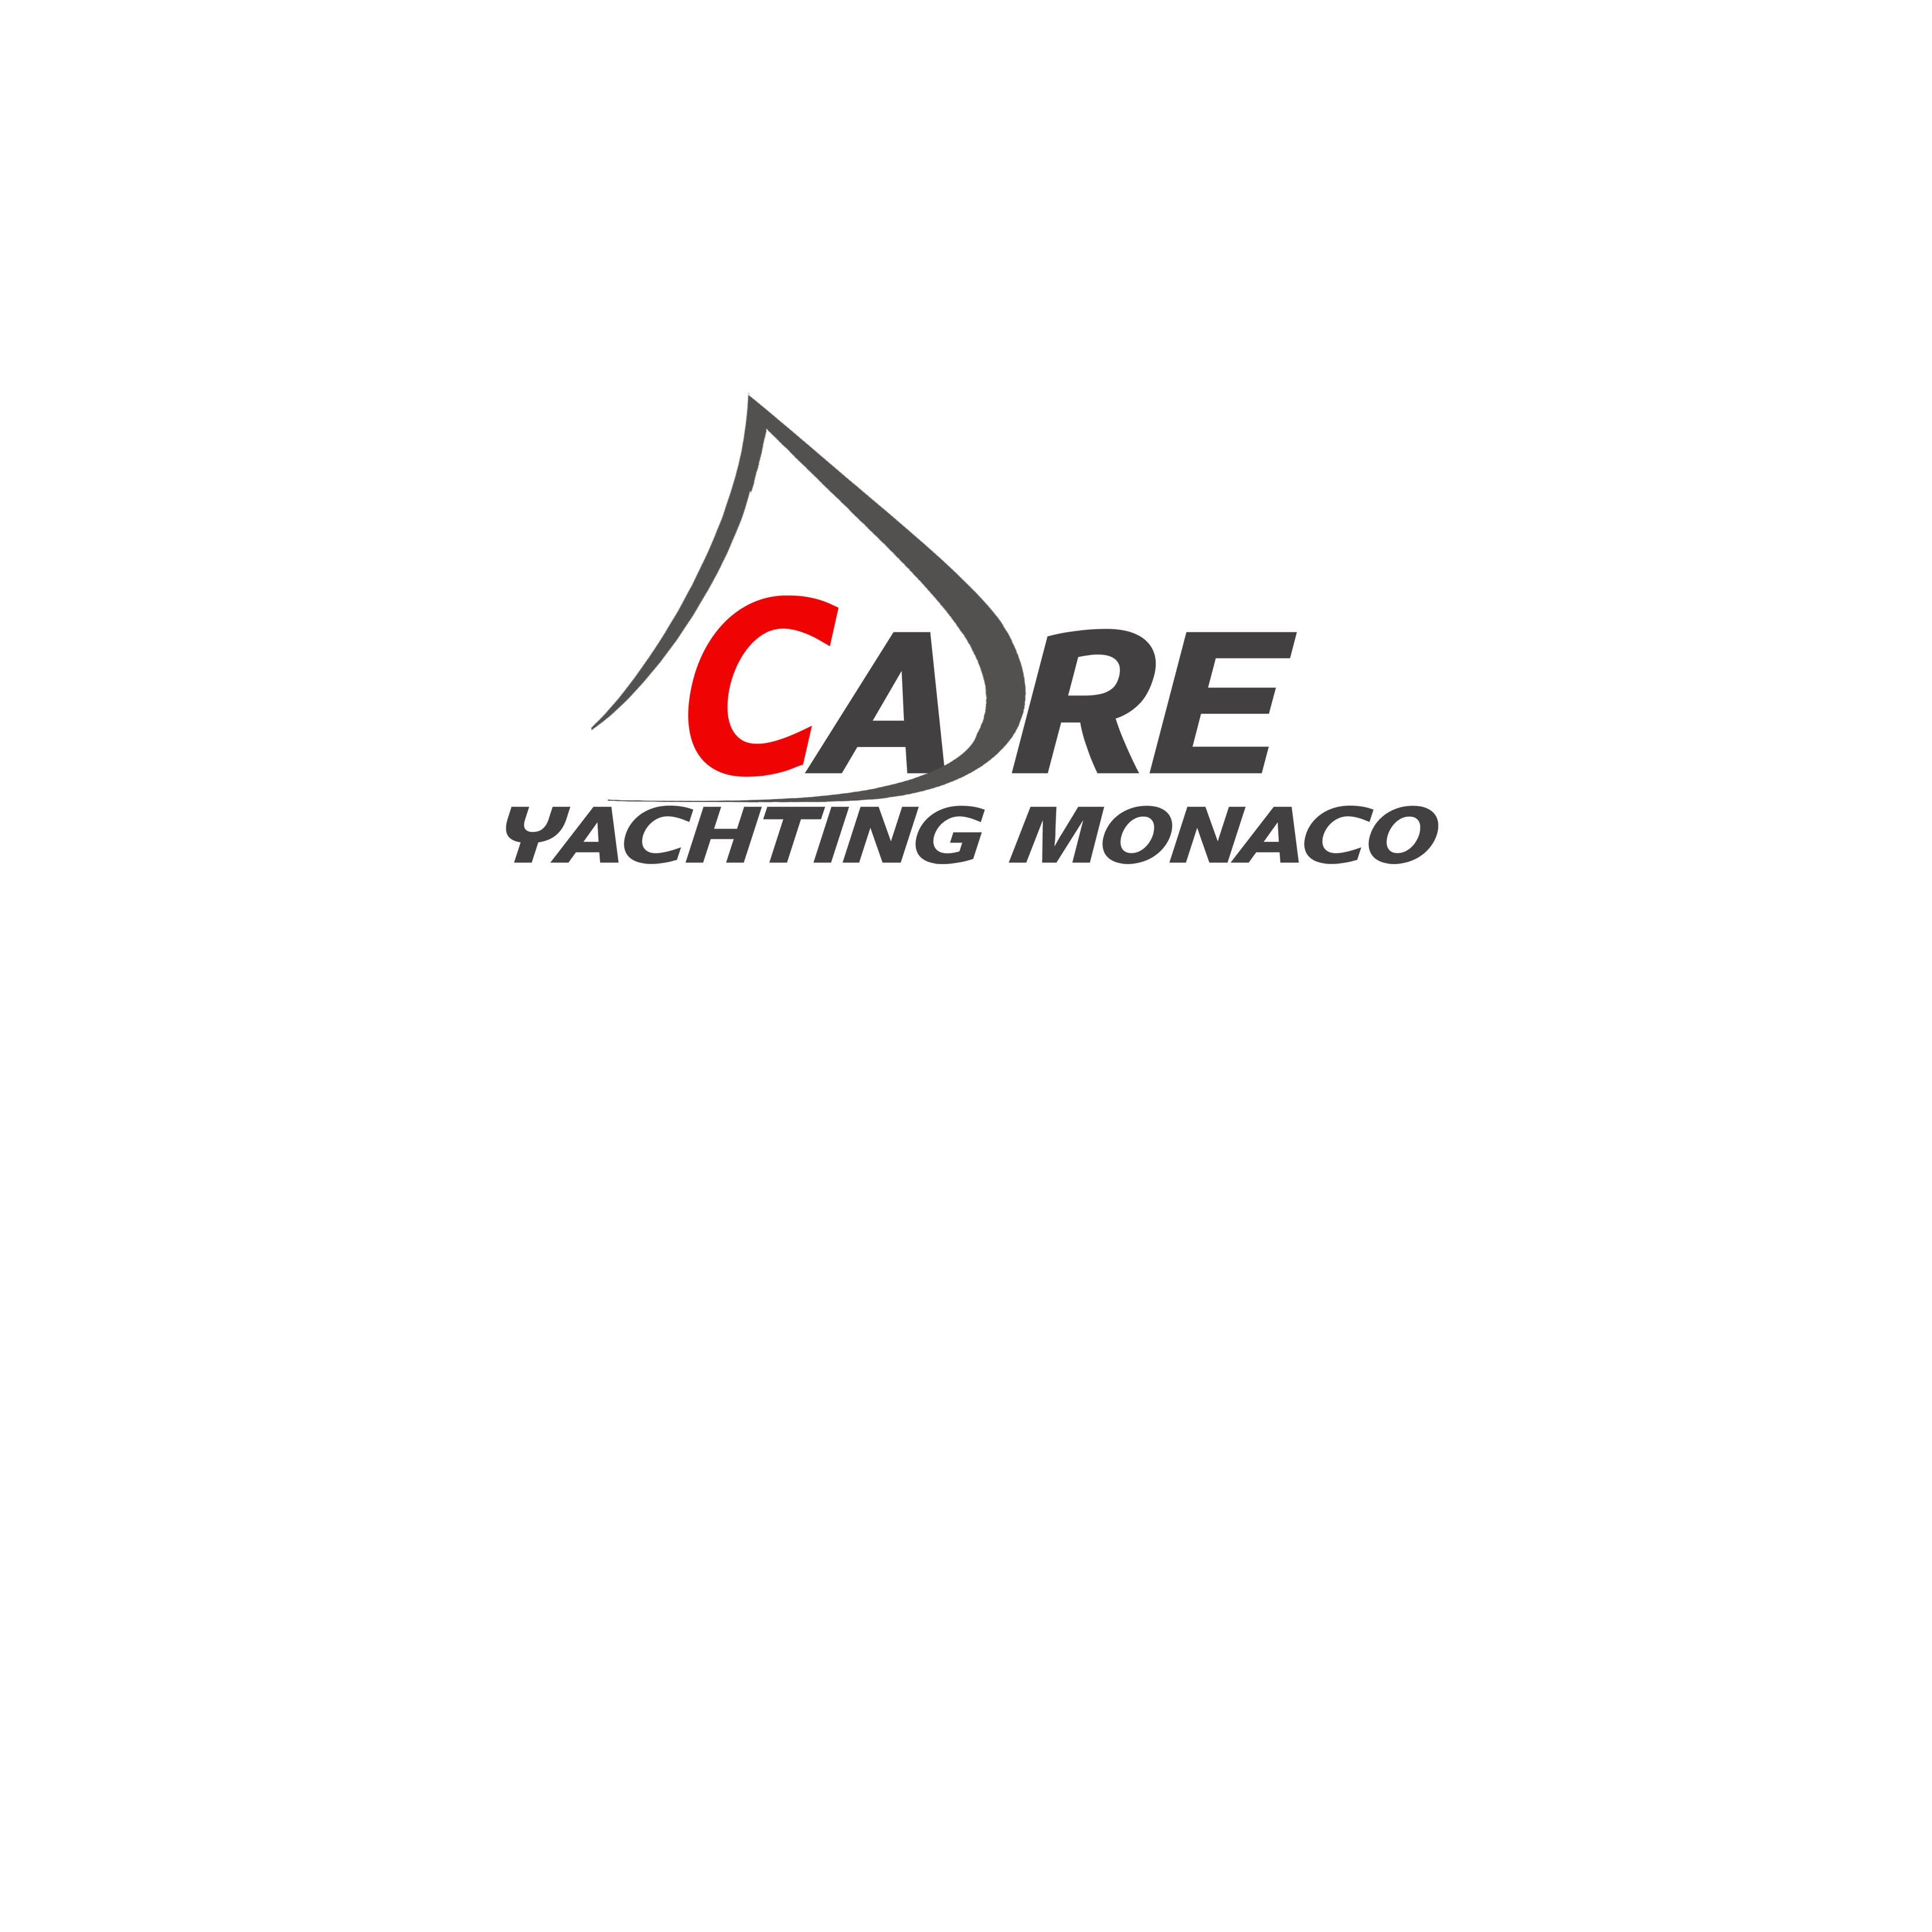 Logo Design by Alan Esclamado - Entry No. 114 in the Logo Design Contest New Logo Design for Cadre Yachting Monaco.